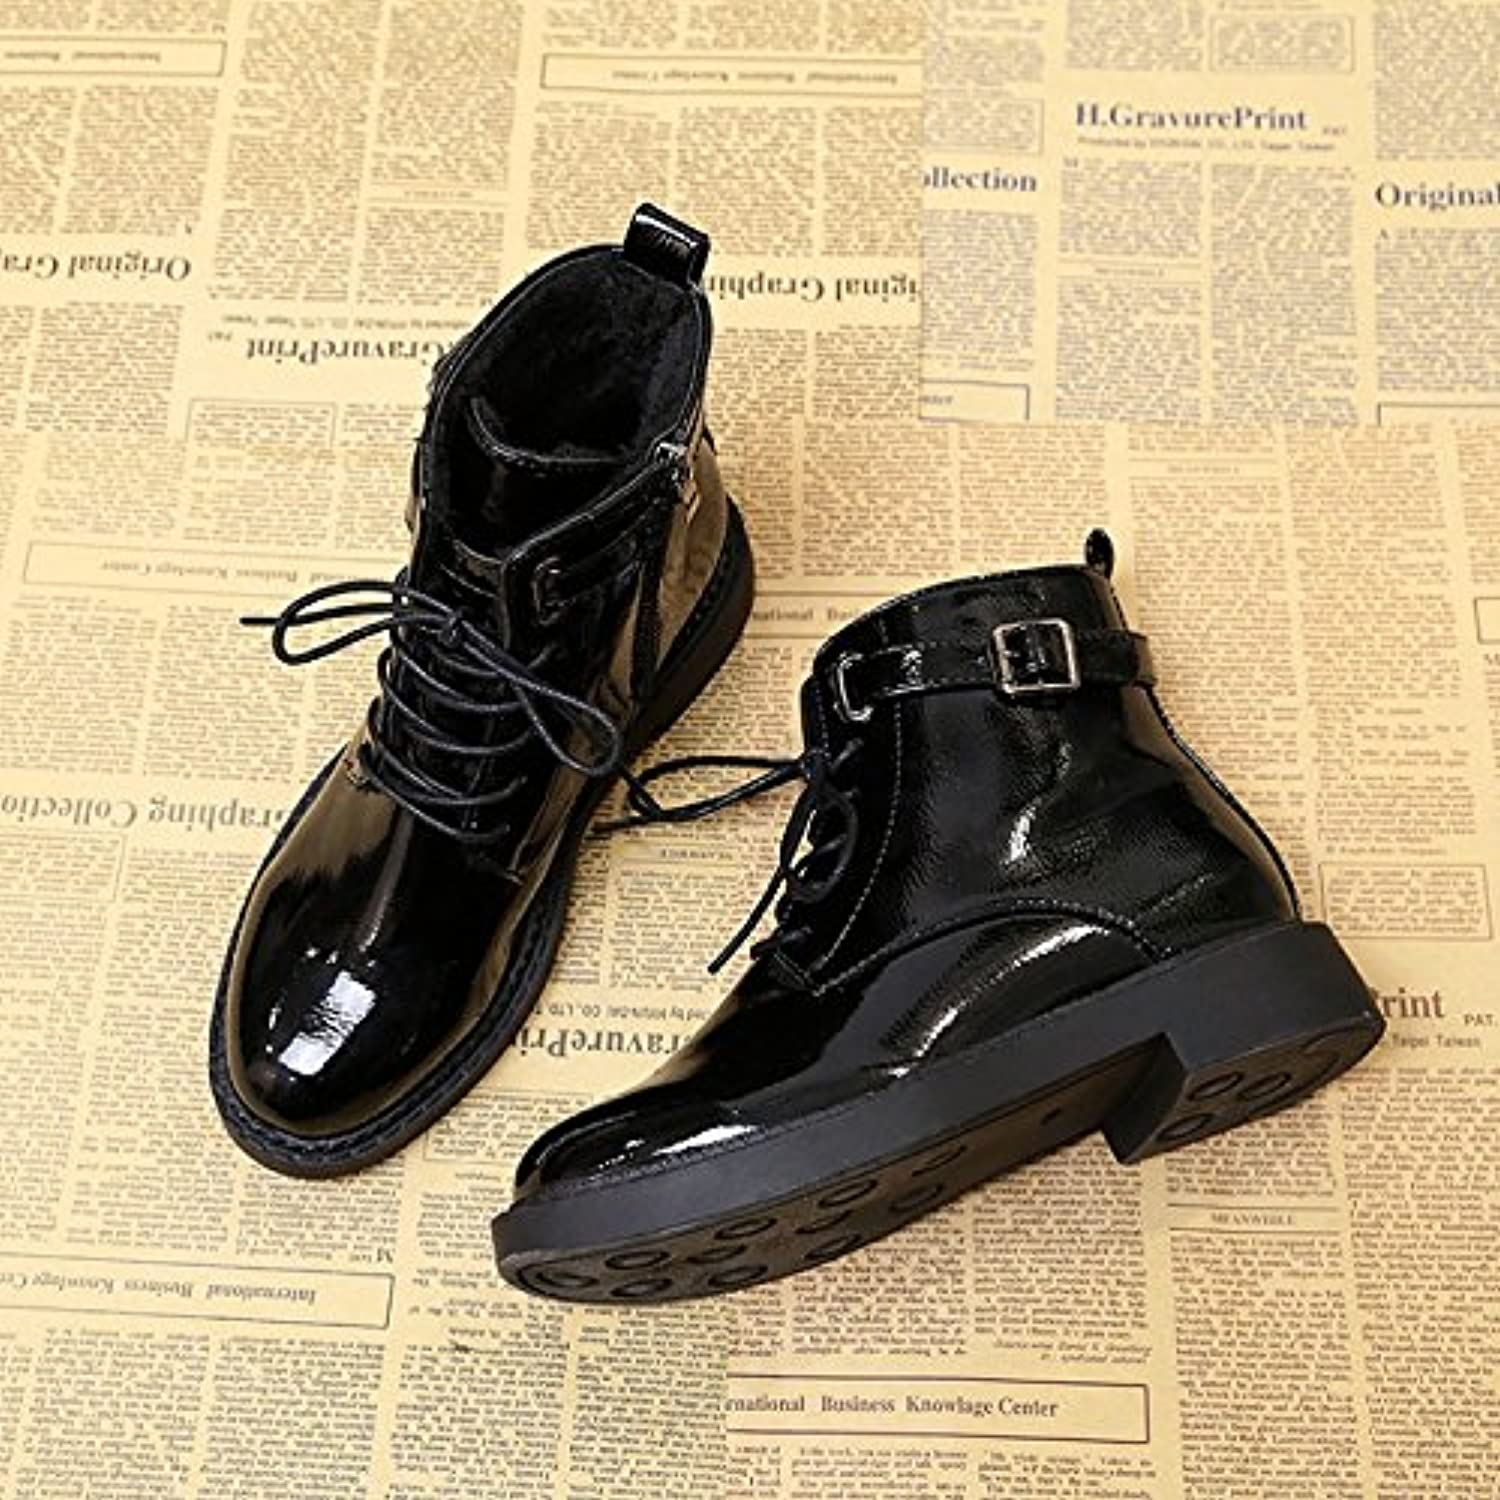 WYMBS Women's shoes Patent Leather Glossy Keep Warm Flat Student Martin Boots,Black,37